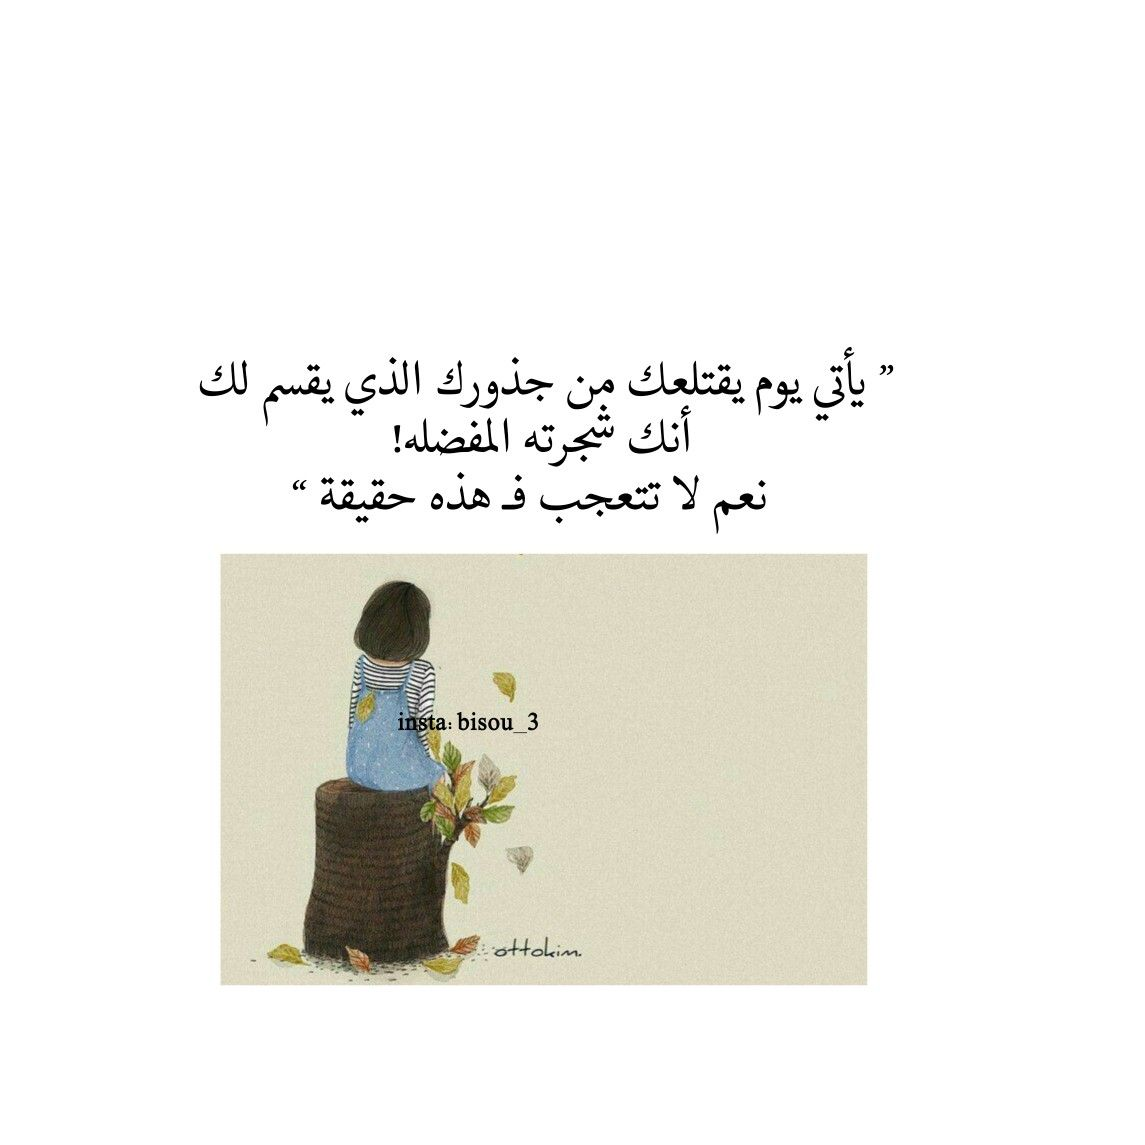 Pin By Syeℓma ۦ On تصميم صور خلفيات بيضاء Poet Quotes Quotations Anime Expressions